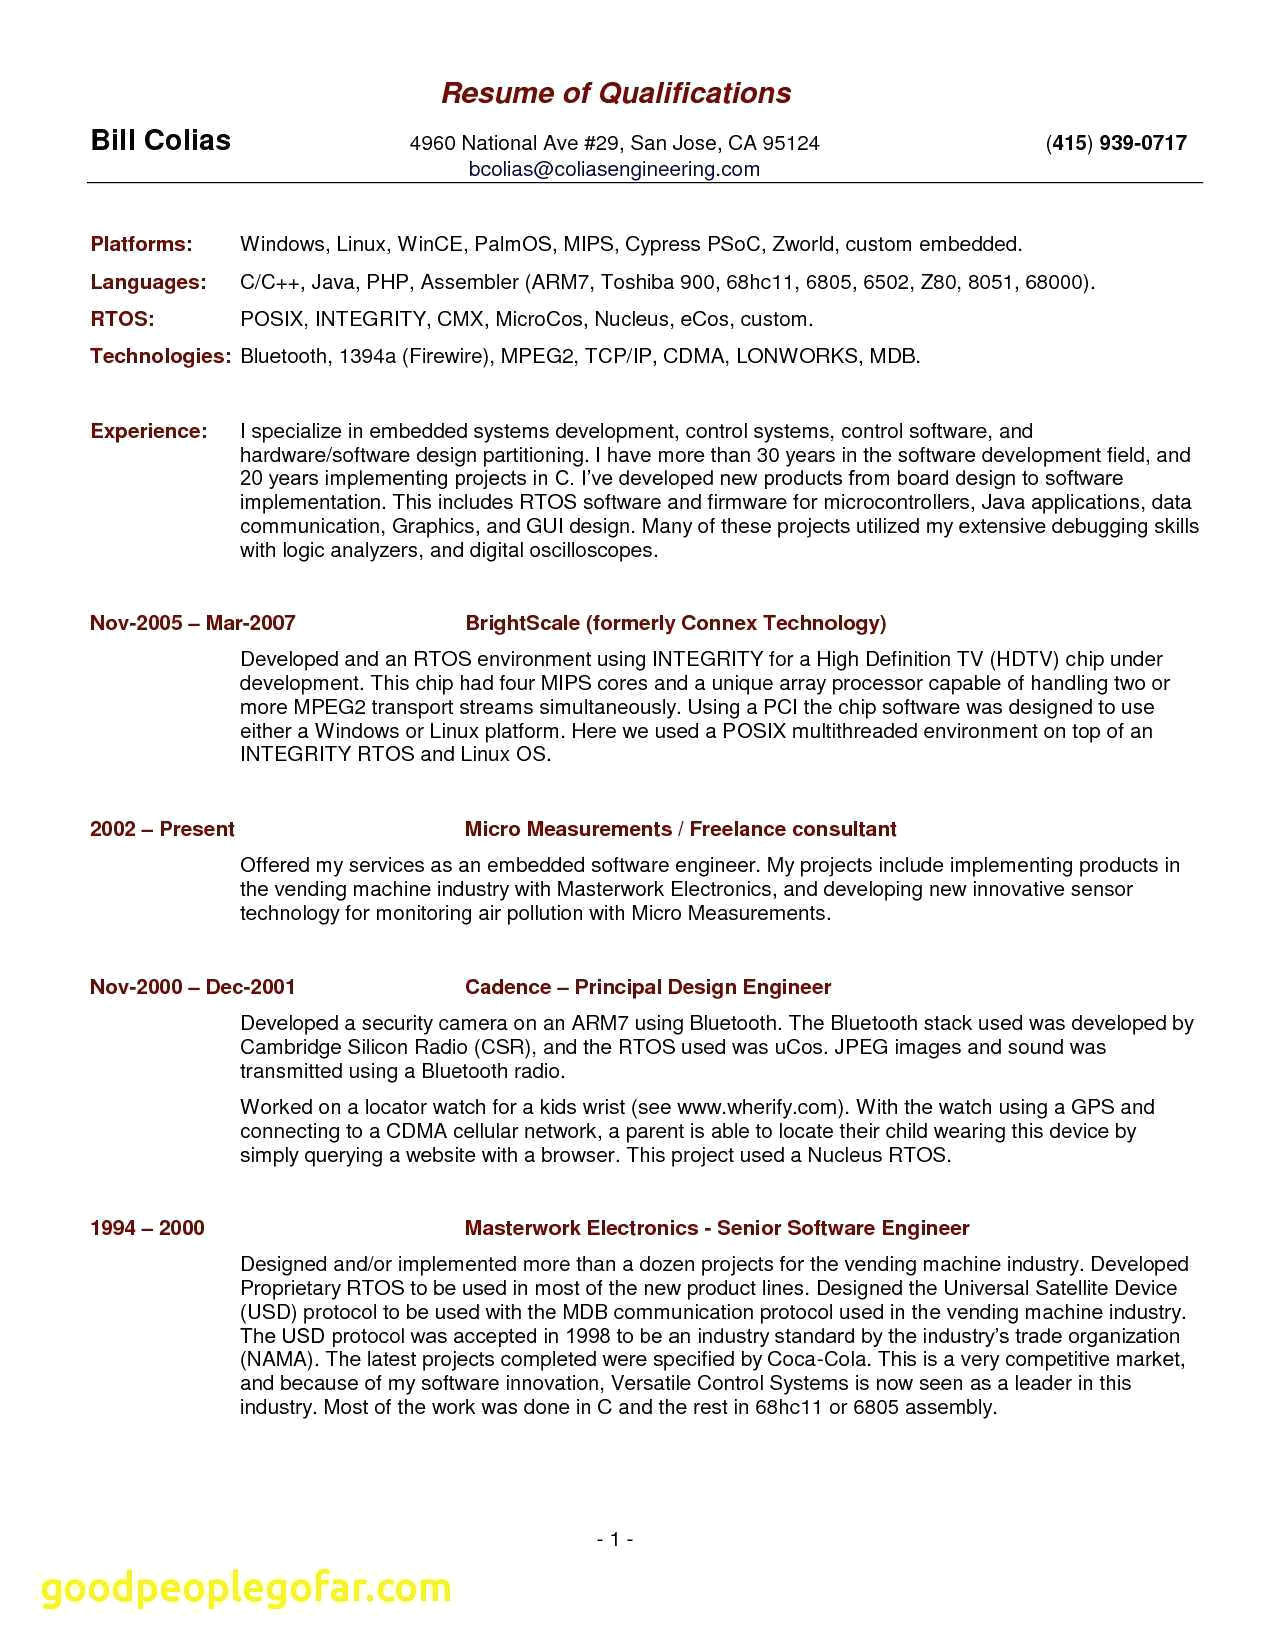 Service Industry Resume Sample - 40 Best Skills for Resumes